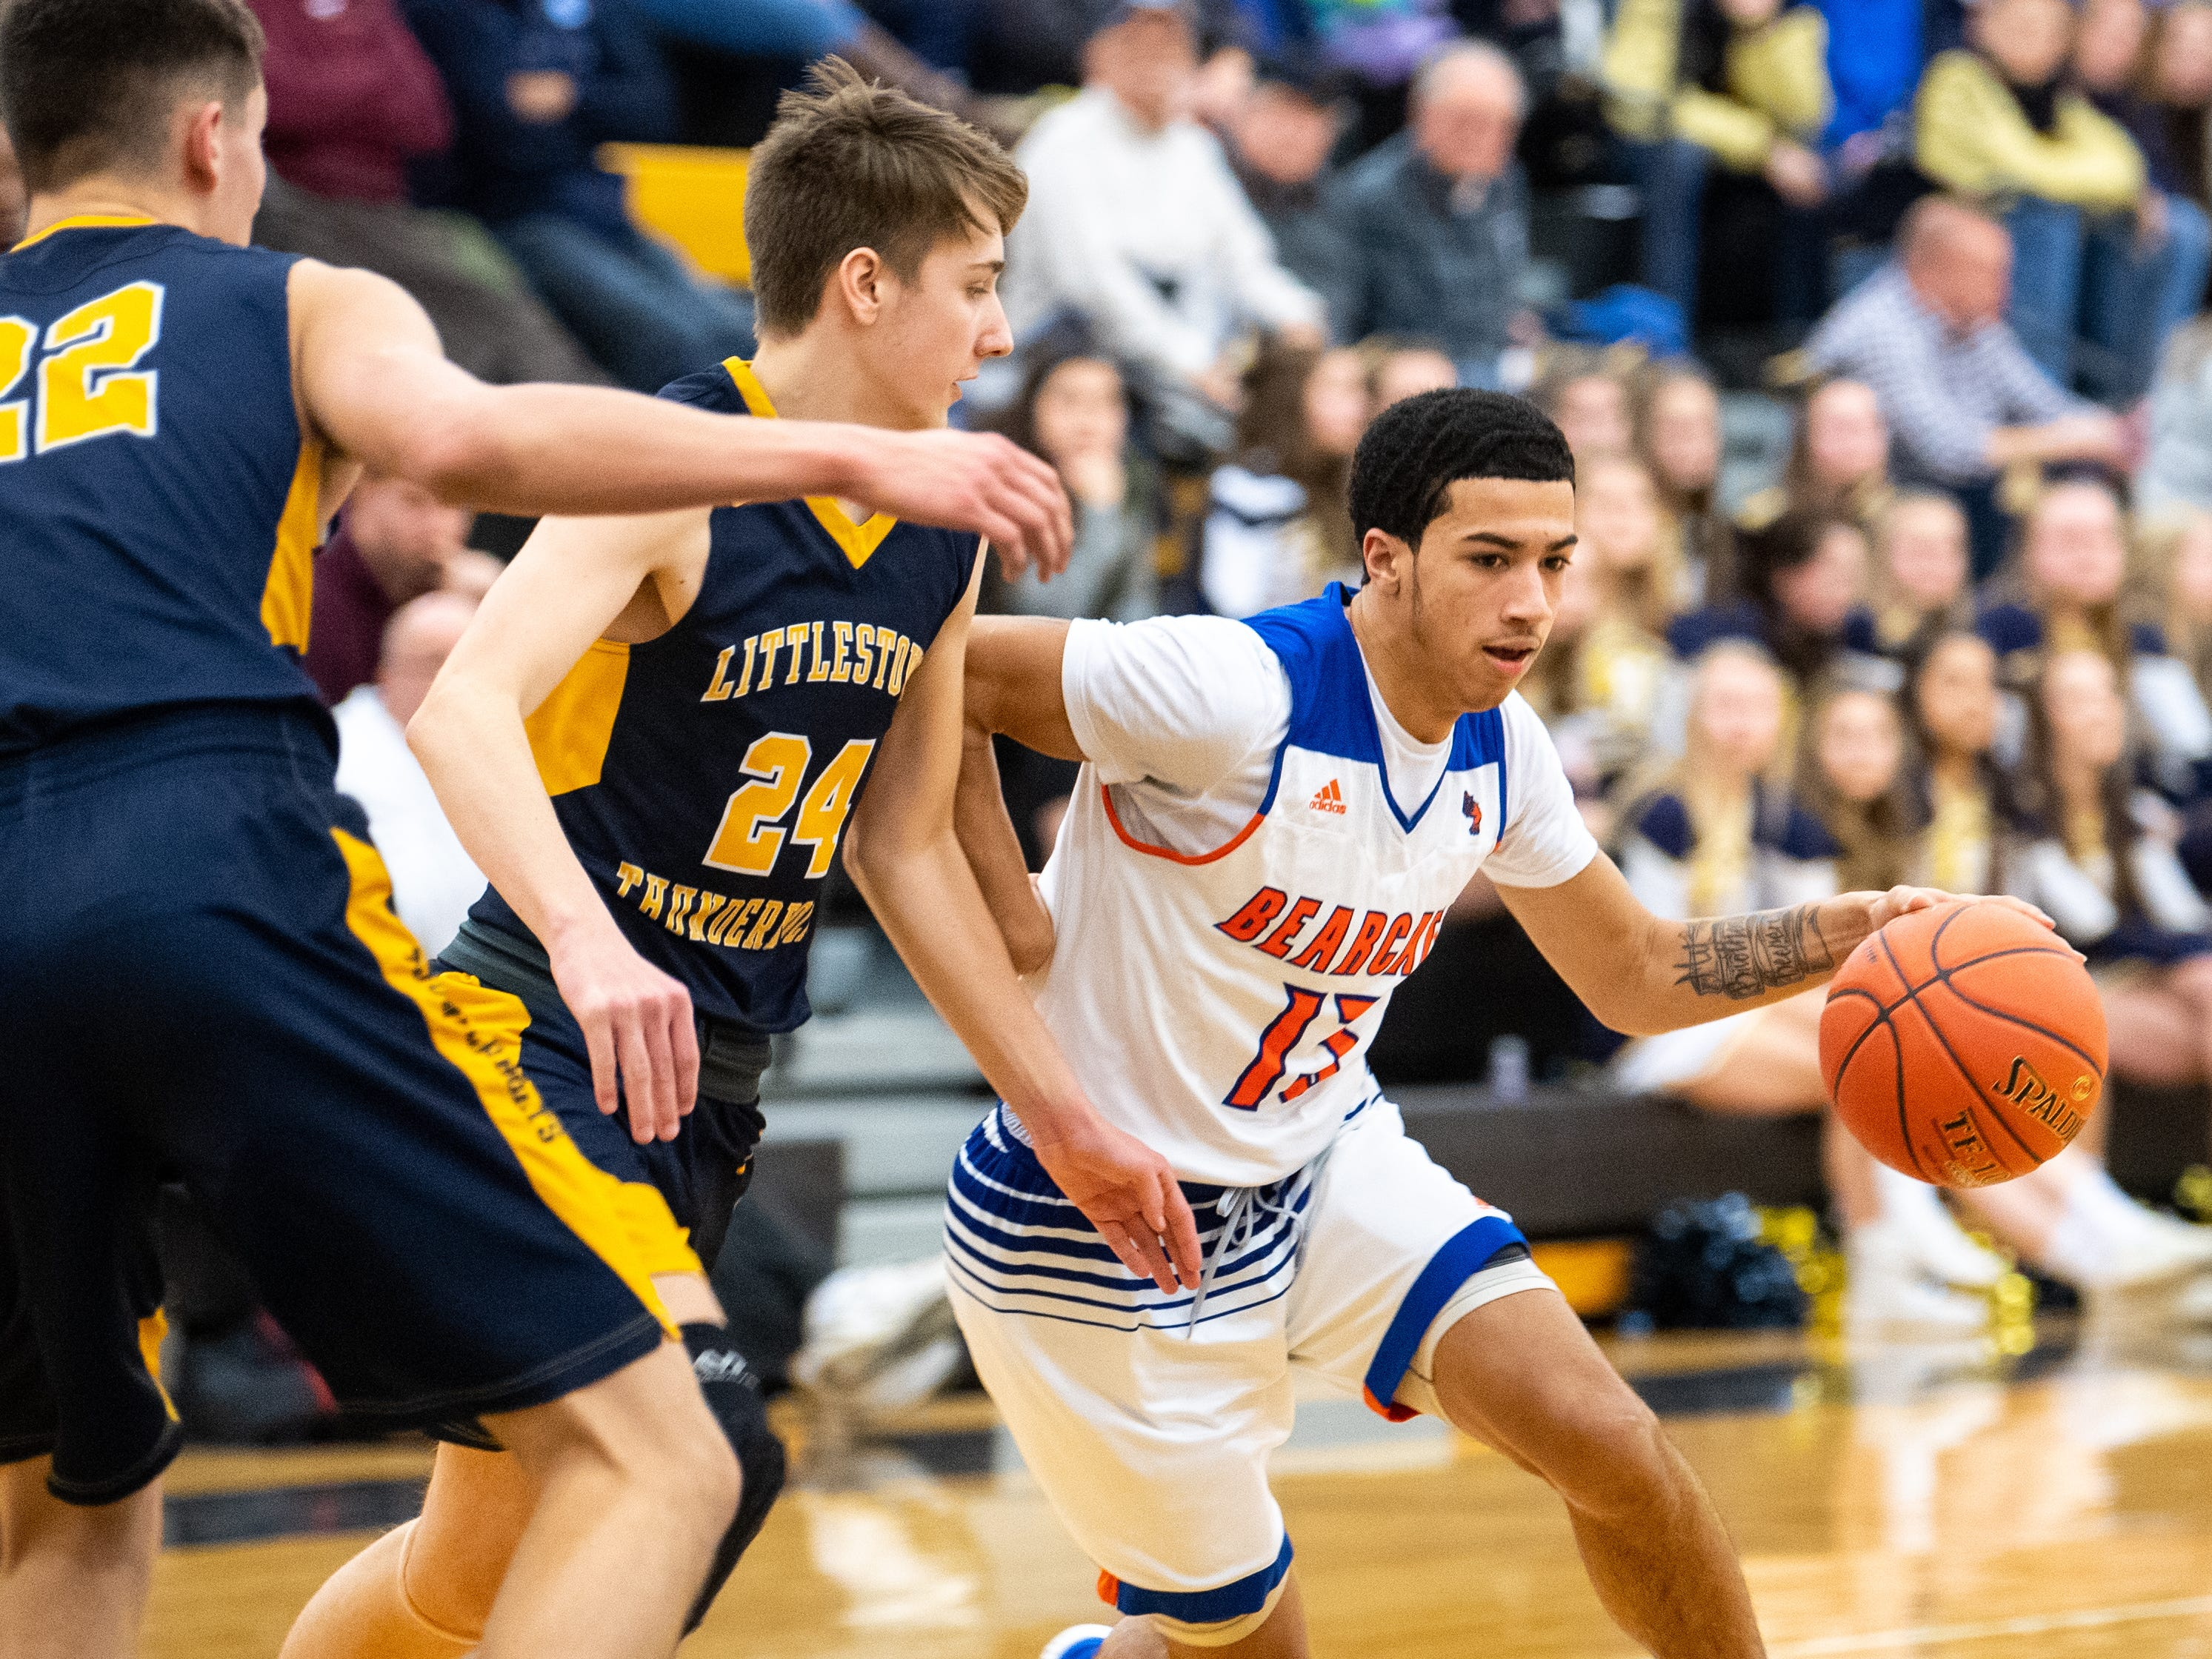 Dayvon Cortez (13) looks to get past the defense during the YAIAA boys' basketball semifinals between York High and Littlestown, Wednesday, February 13, 2019 at Red Lion Area High School. The Bearcats defeated the Thunderbolts 74 to 51.